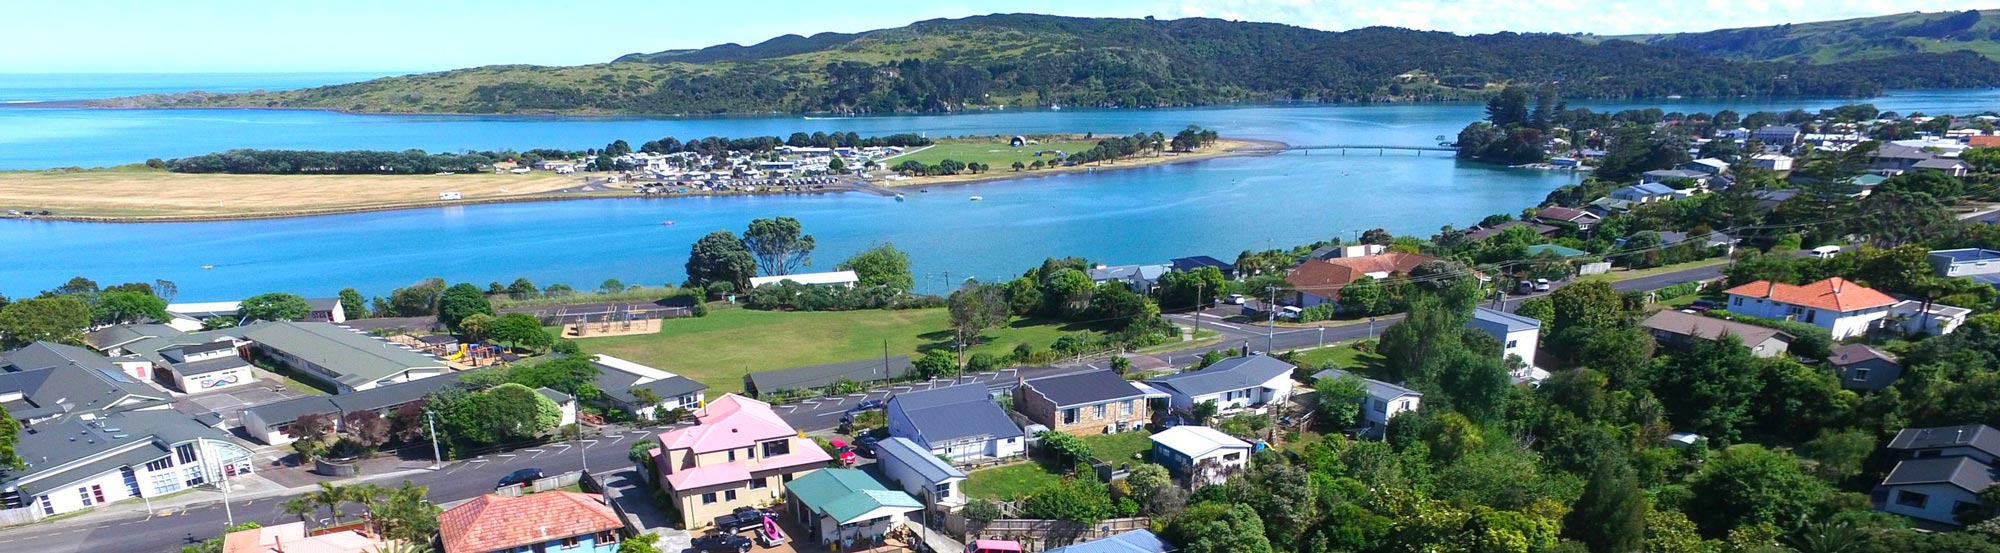 Best Small Town in New Zealand Header